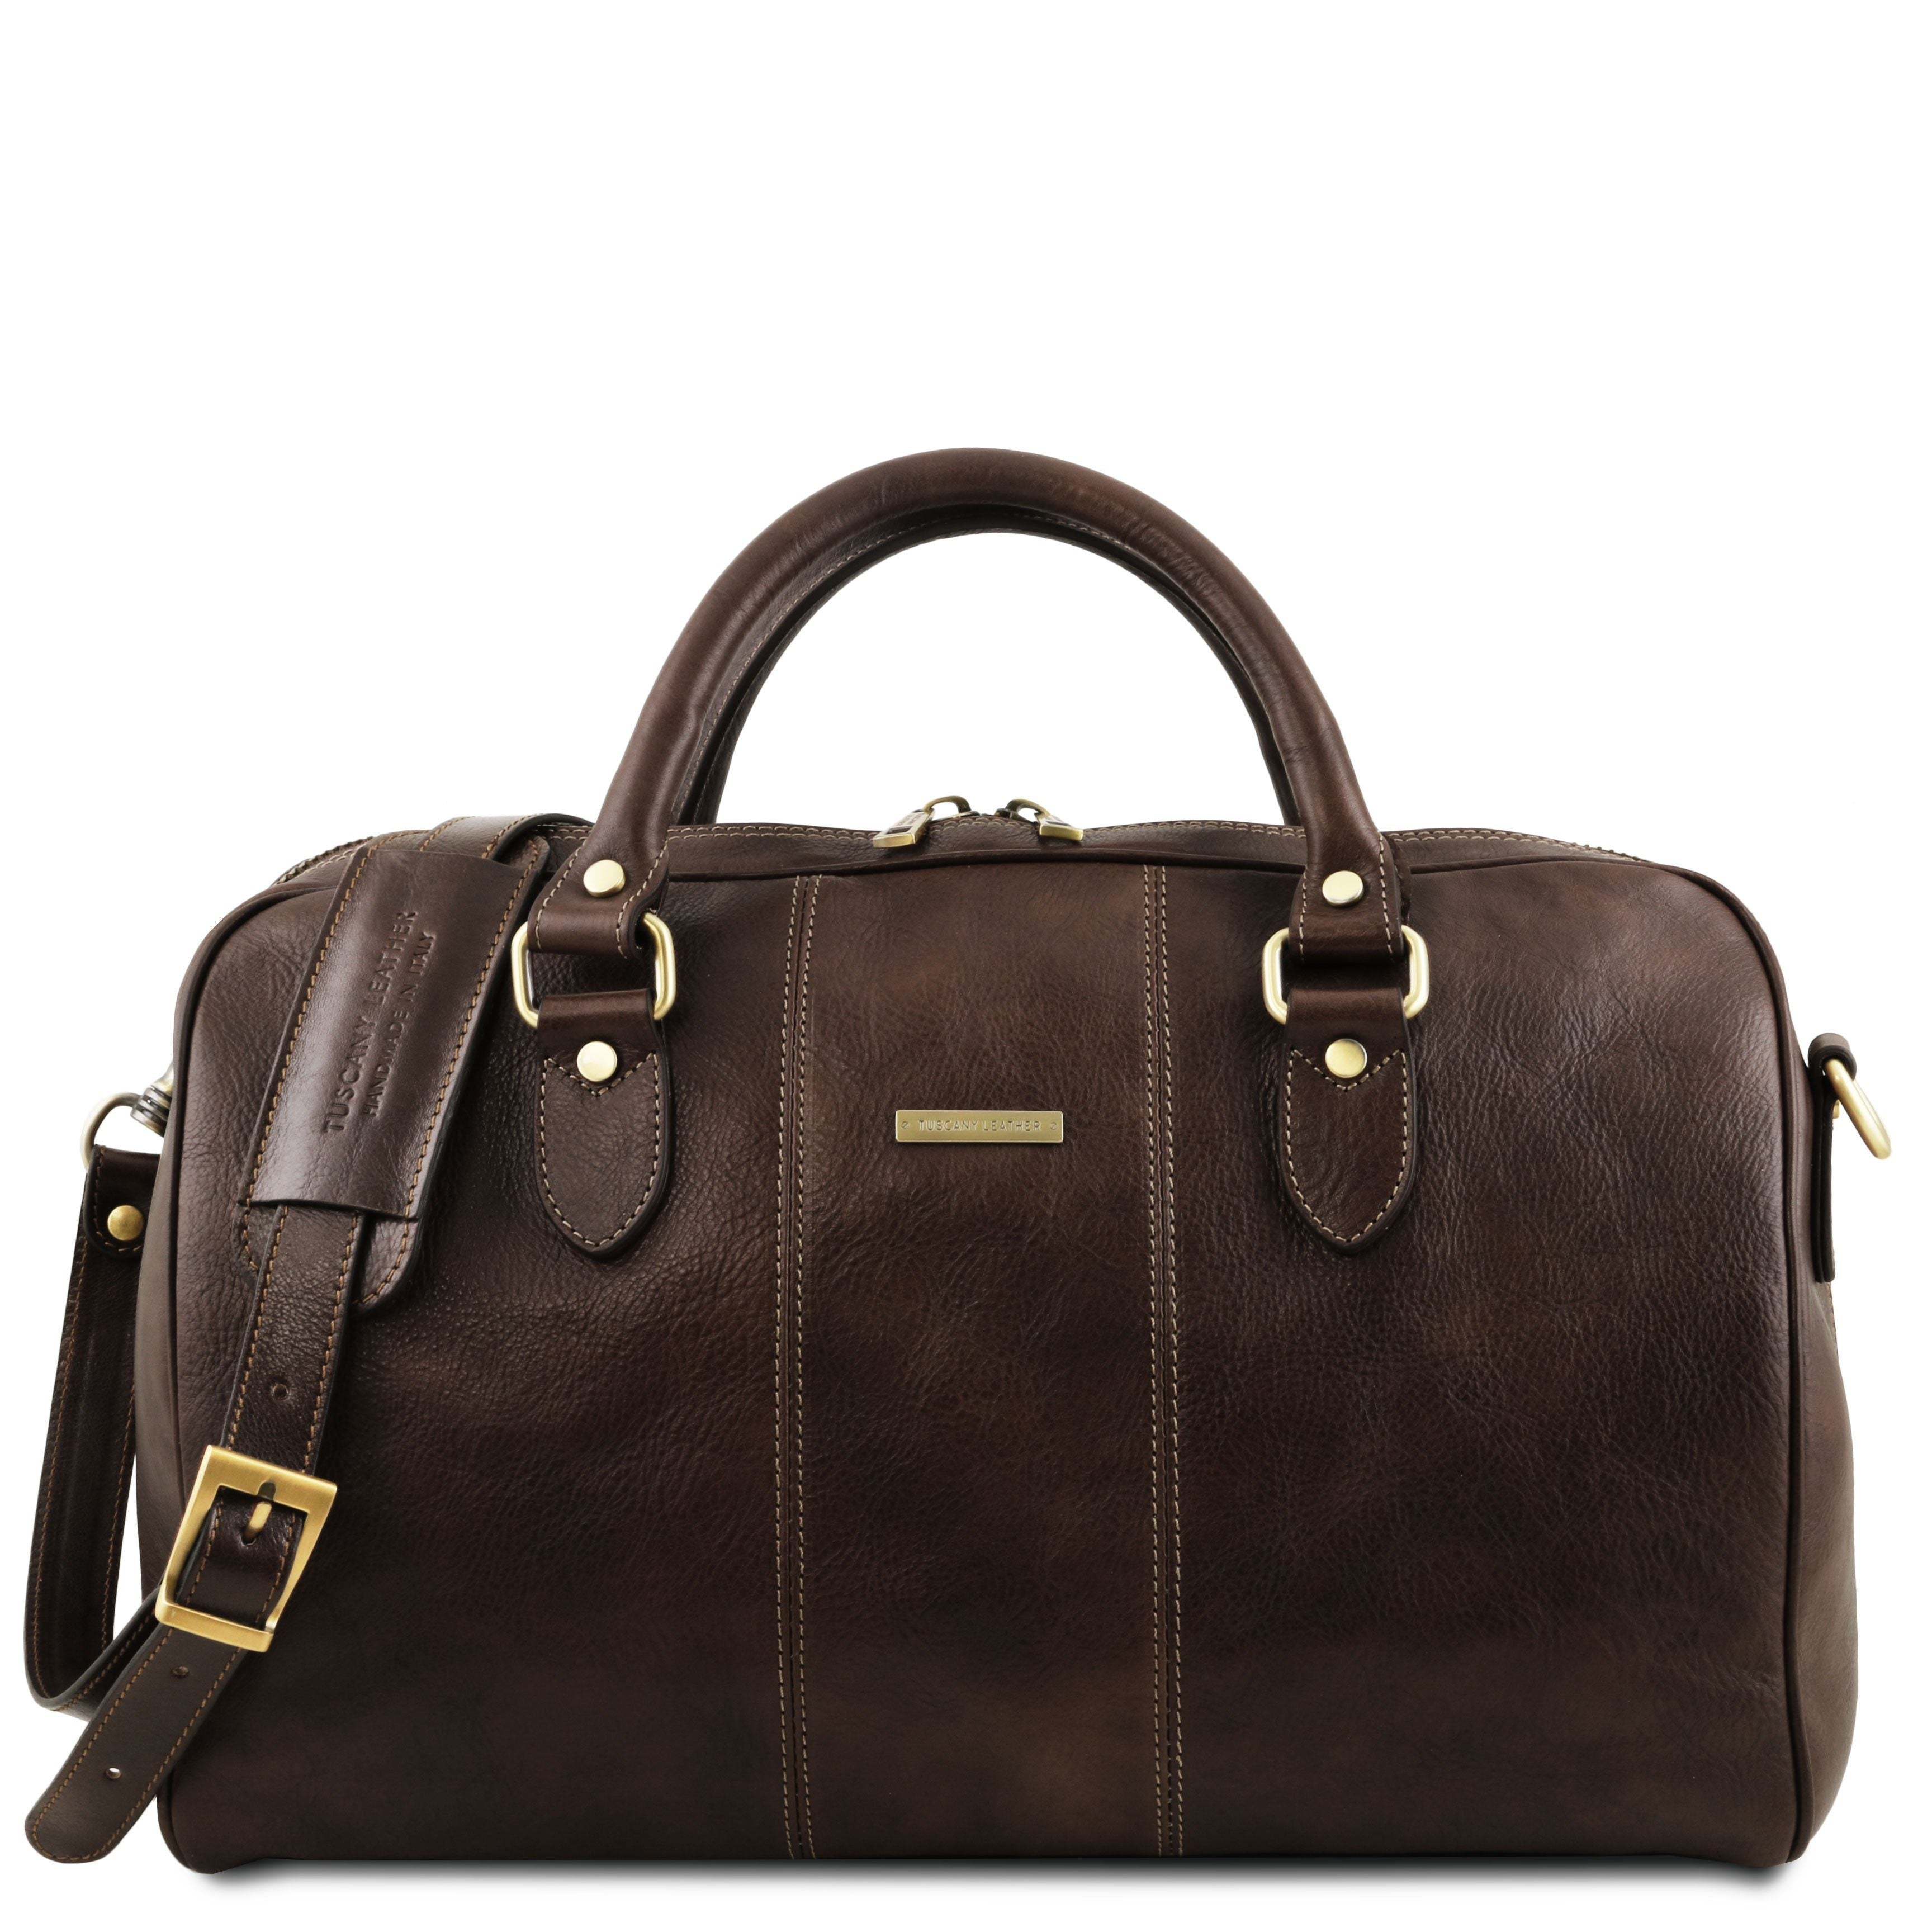 Tuscany Leather Traveller 'Lisbona ' Leather Cabin Duffle Bag (55Cm) - Large Duffle Bag Tuscany Leather Dark Brown